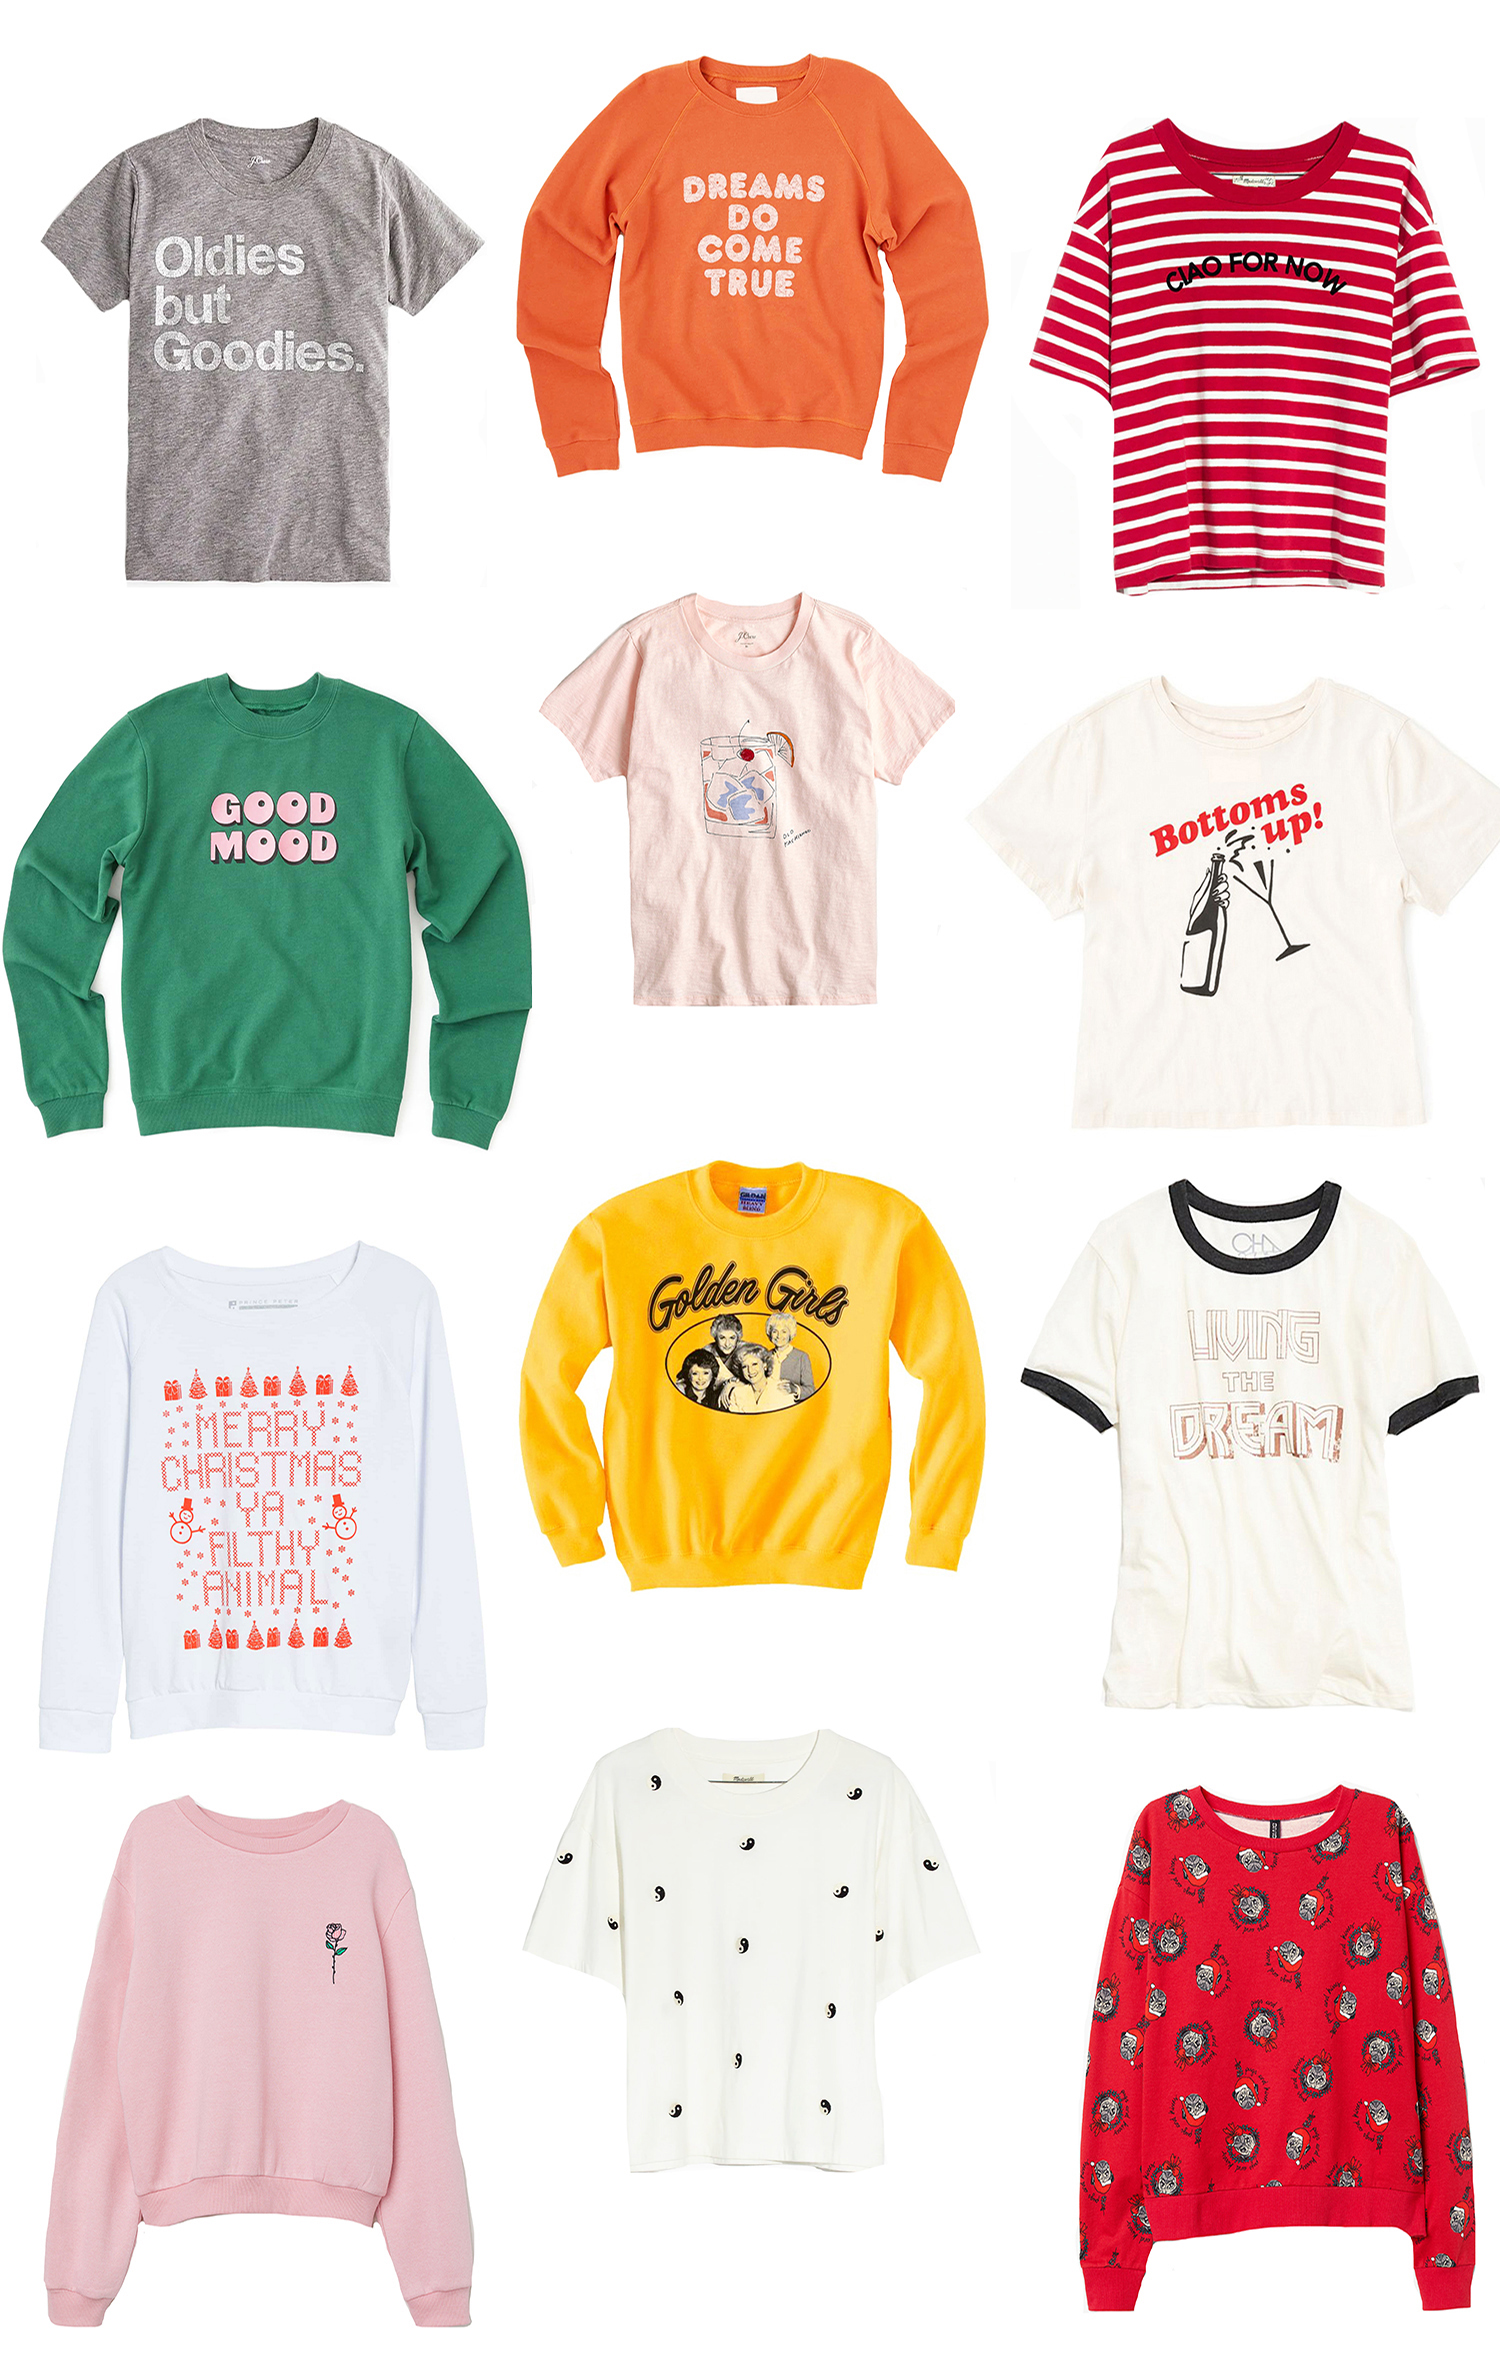 a68fe8925 It's hard to resist a cute graphic tee or sweatshirt—especially when the  weather is chilly outside. We did a little window shopping and found some  cuuute ...